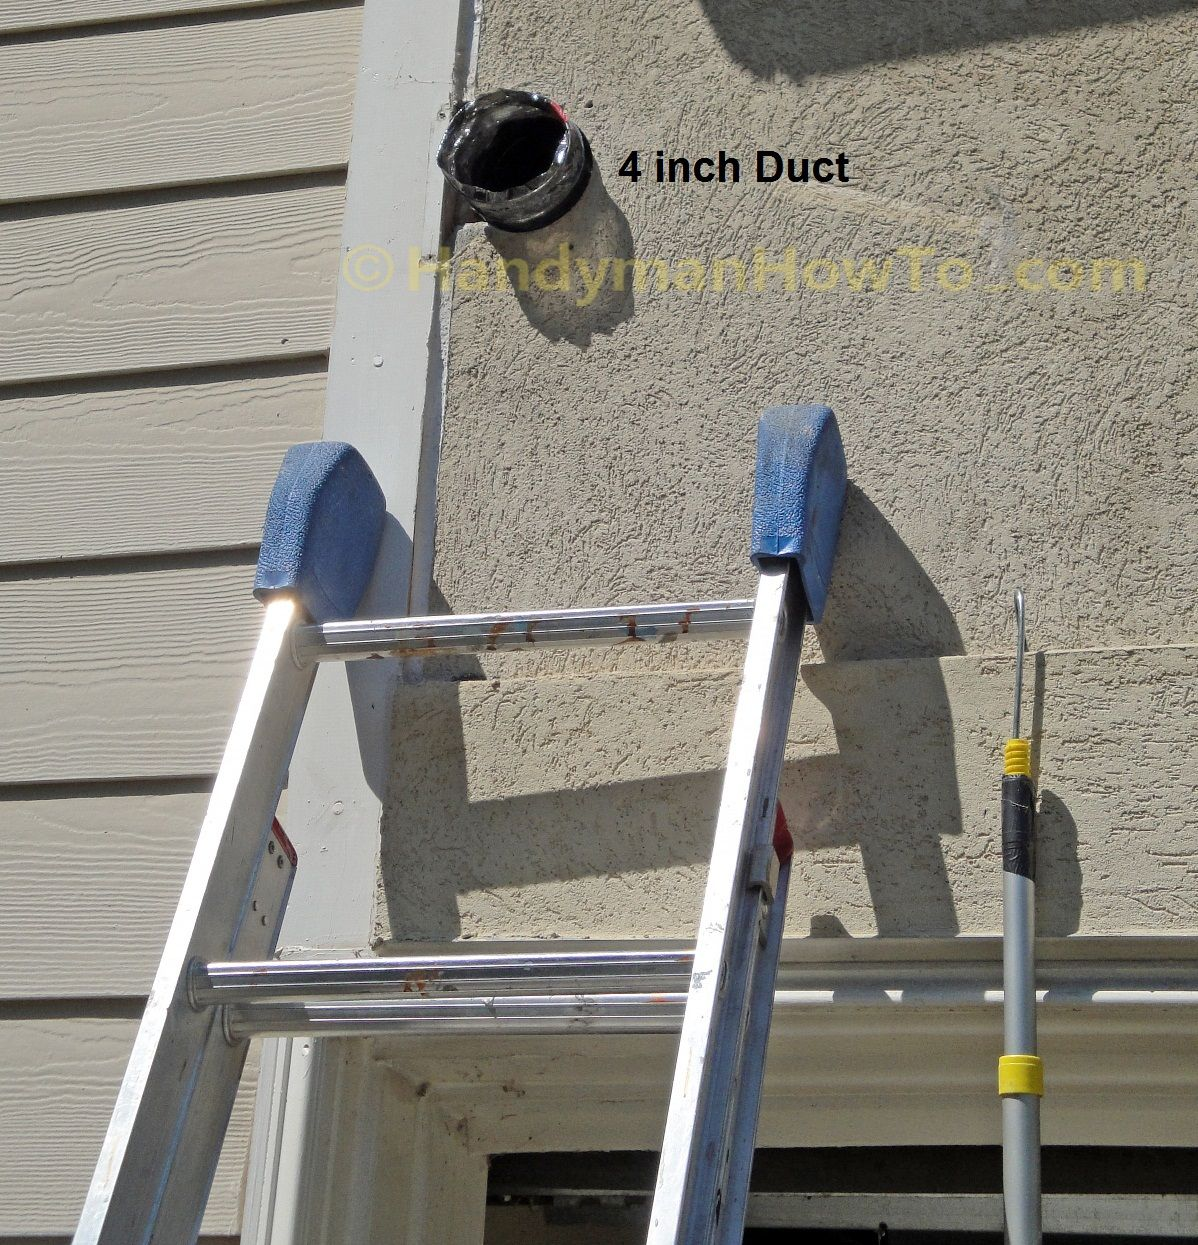 Bathroom vent fan installation flex duct pulled through the exterior wall